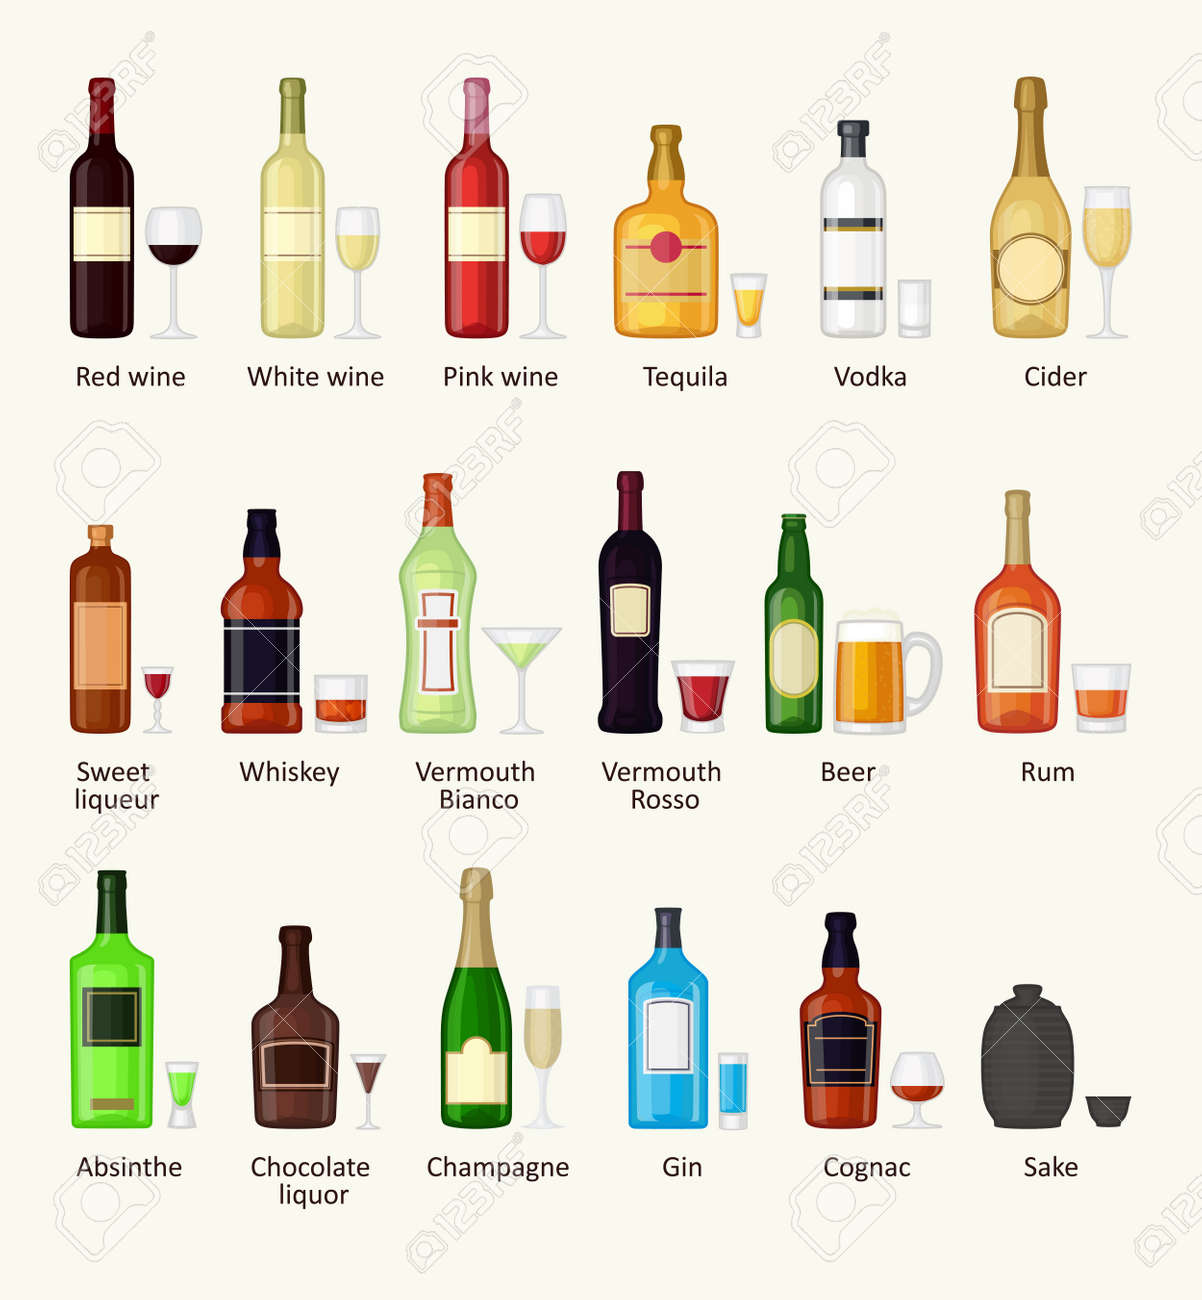 Alcohol drinks beverages and alcohol cocktail whiskey drink bottle lager refreshment container. Alcohol menu drunk concept. Set of different alcohol drink bottle and glasses vector illustration. - 54656739